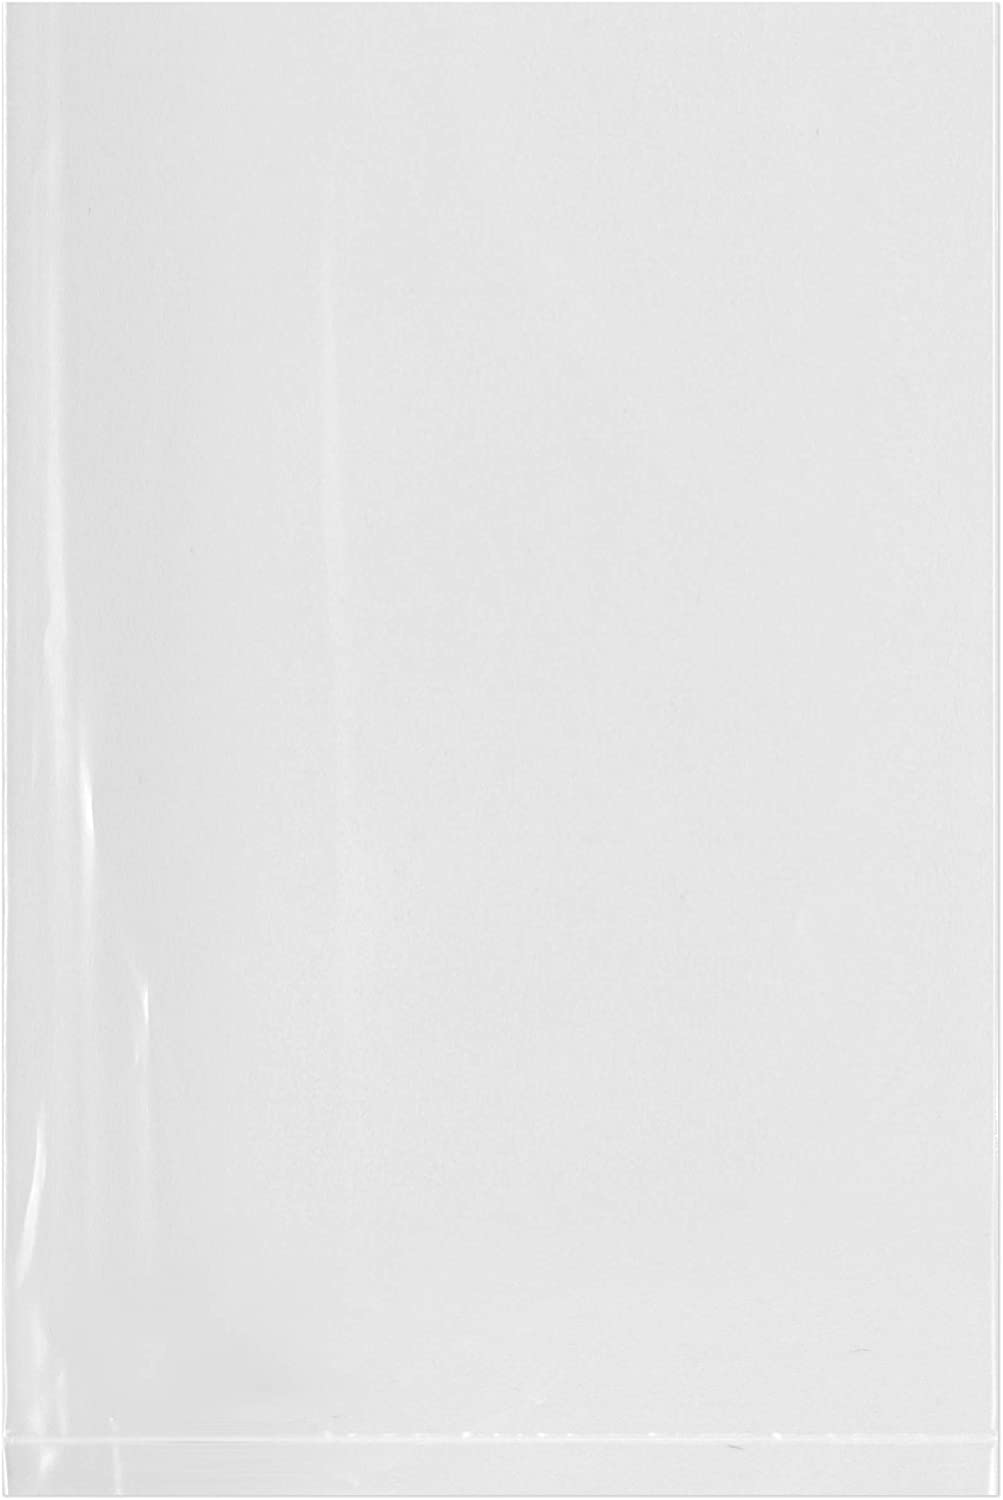 Plymor Flat Open Clear Plastic Poly Bags, 2 Mil, 4